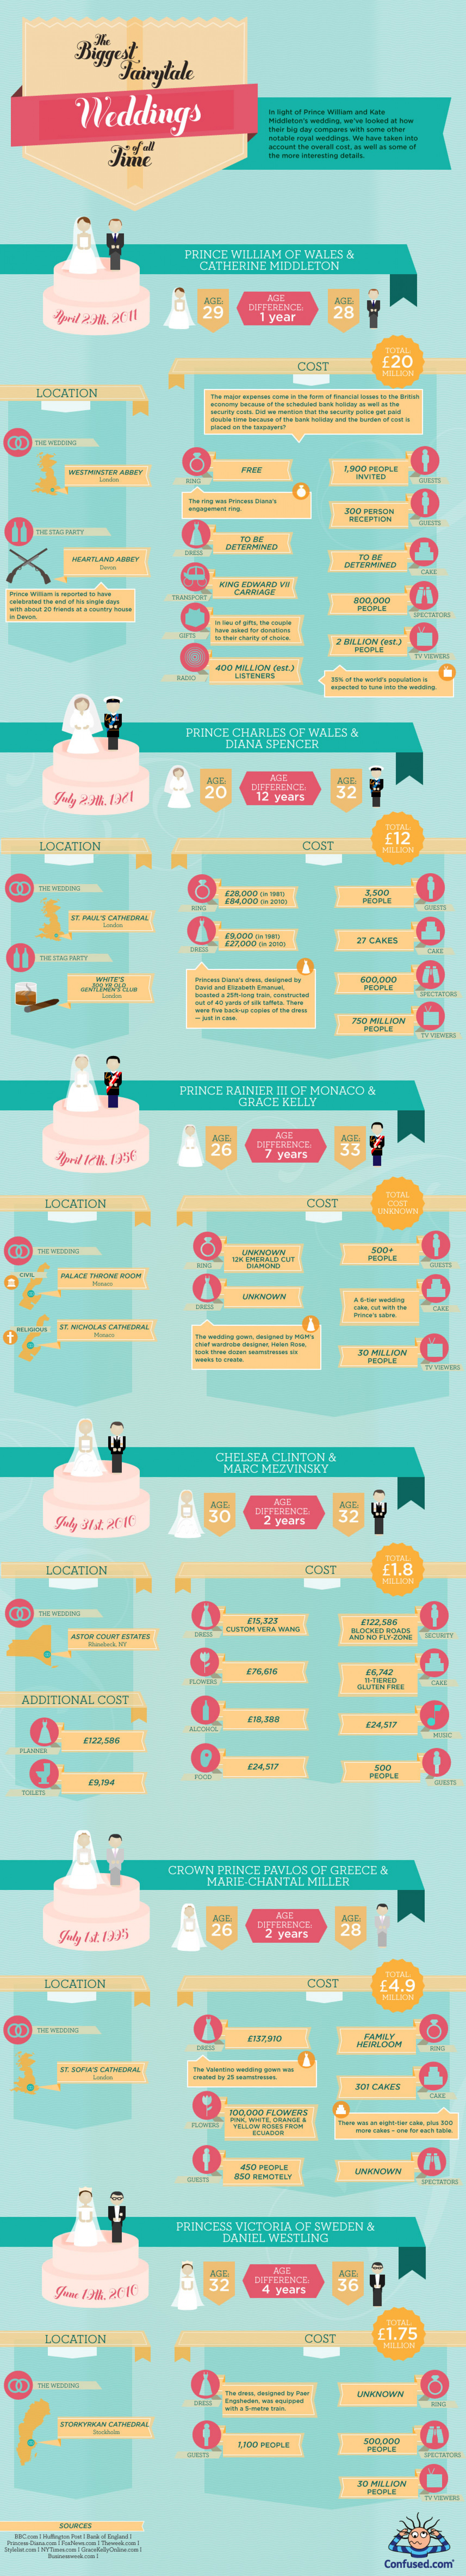 The Biggest Fairytale Weddings of All Time  Infographic